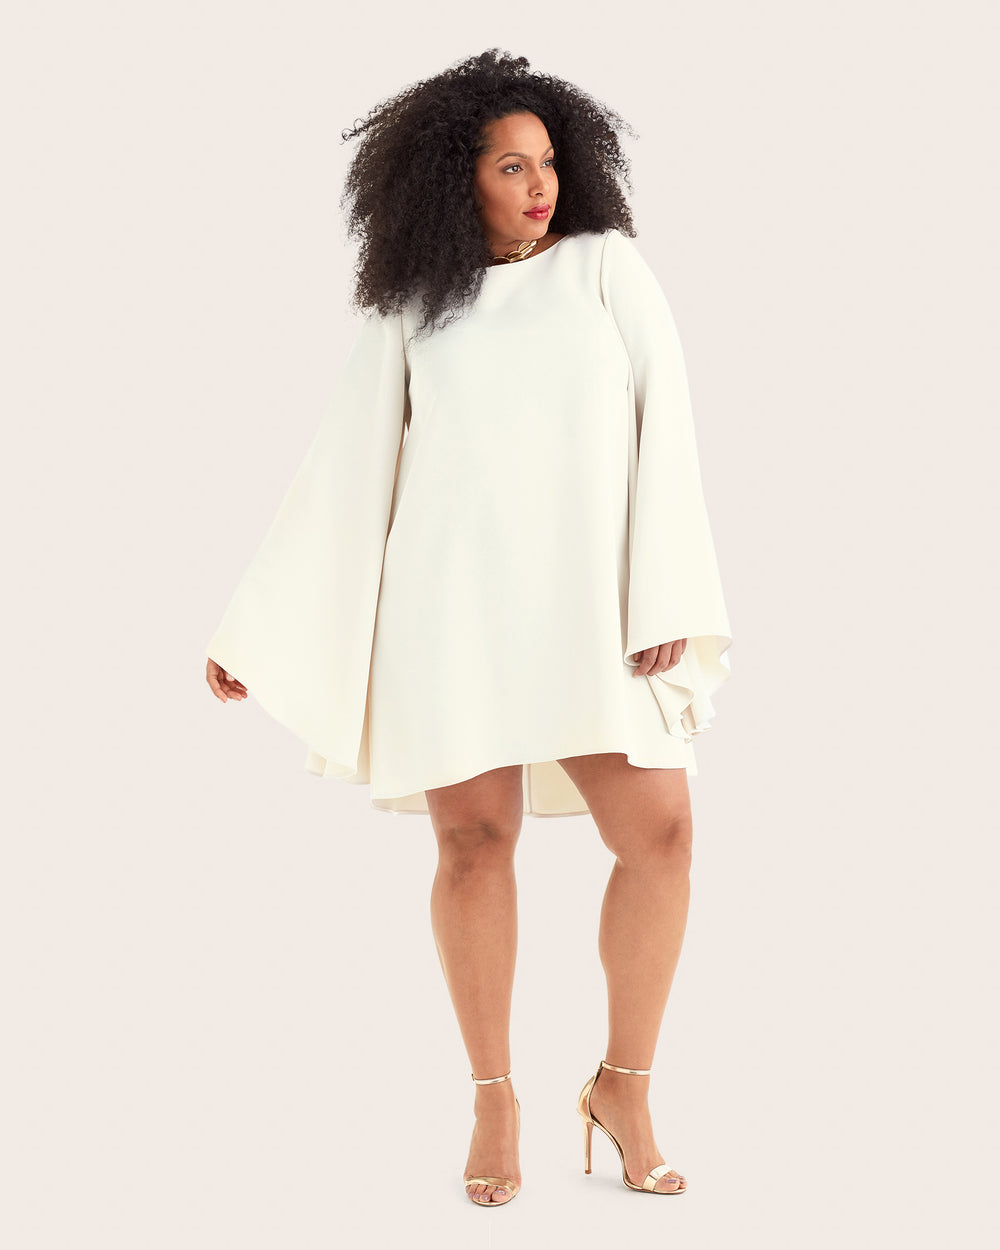 Eve - Short dress with bell sleeves